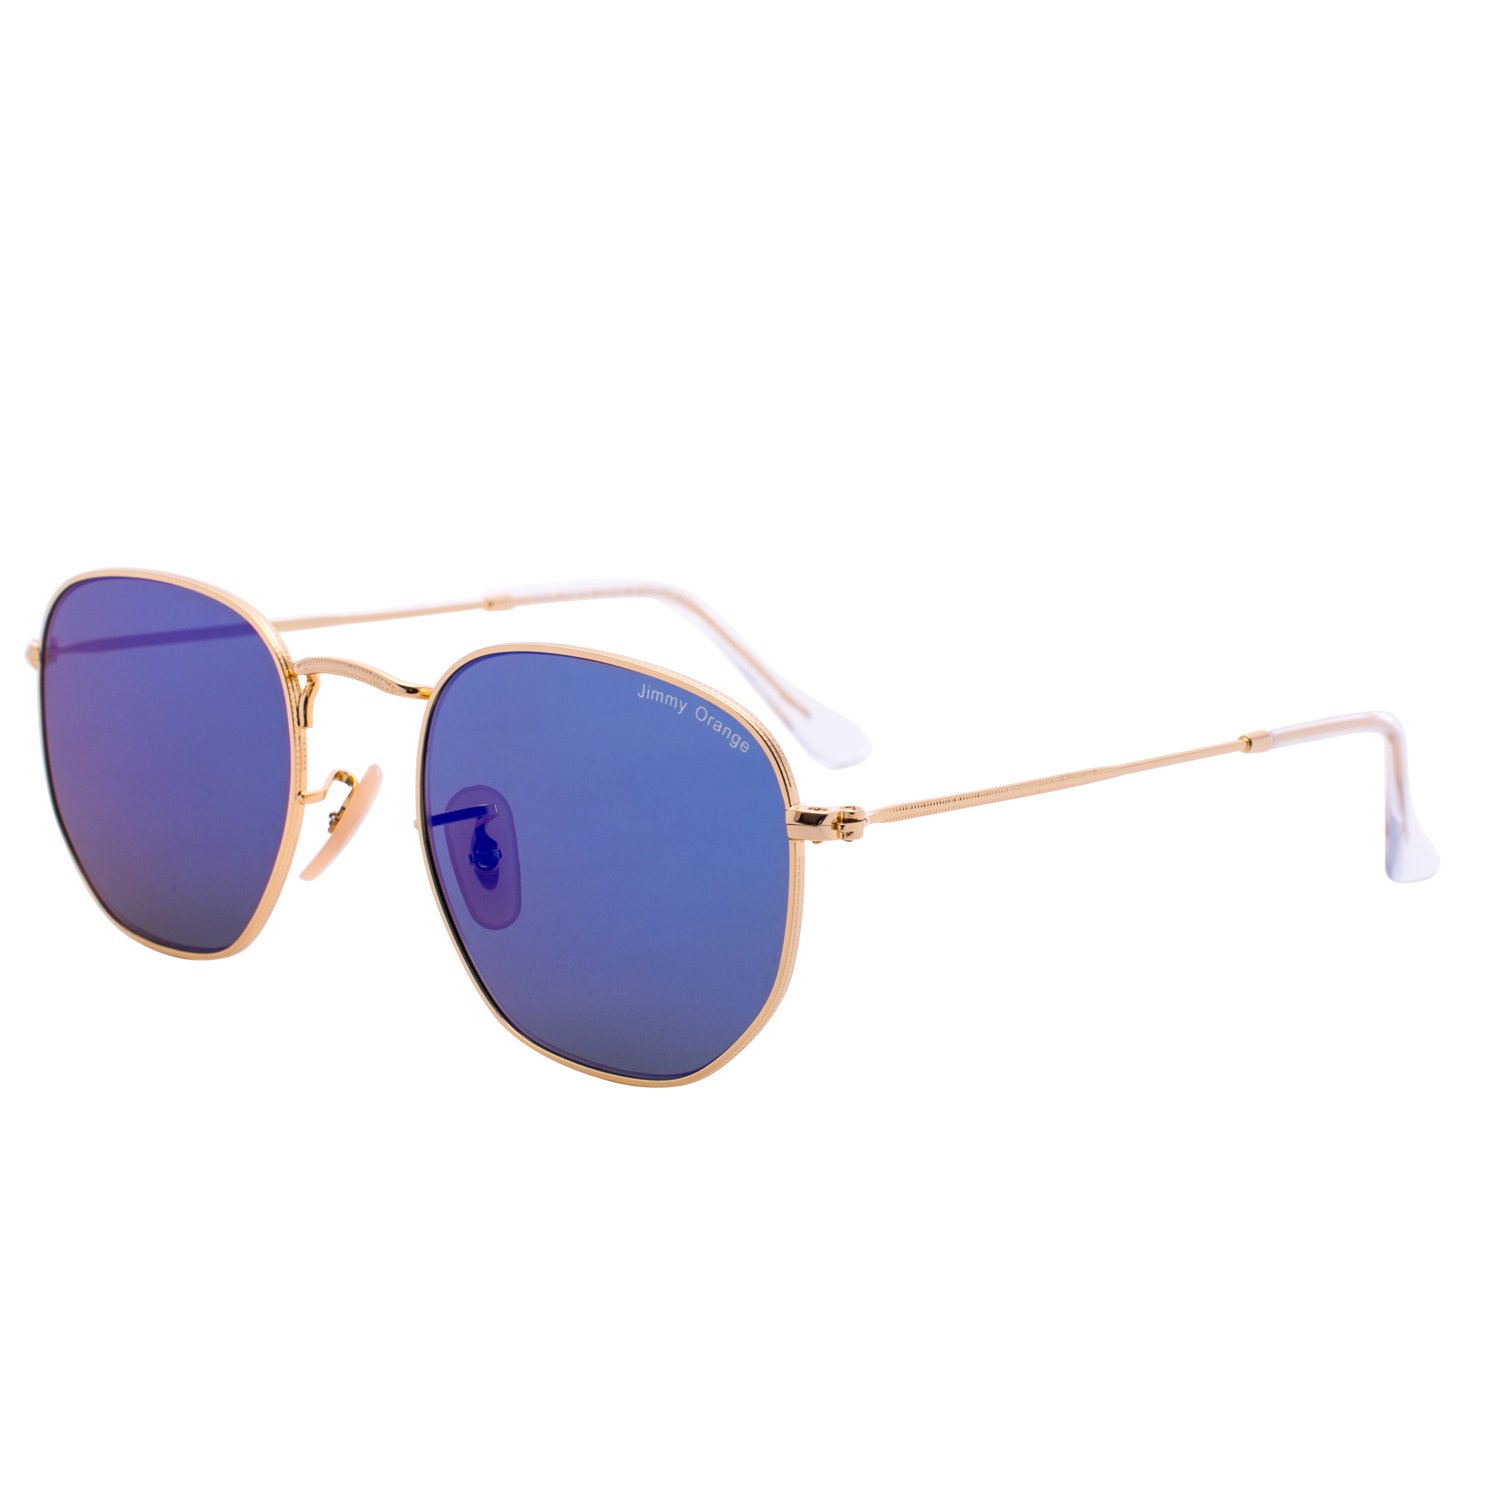 e3b7598850de Jimmy Orange Designer Metal Womens Mens Womens Fashion Round UV Protection  Mirrored Lens Sunglasses J7233 Blue: Amazon.co.uk: Clothing